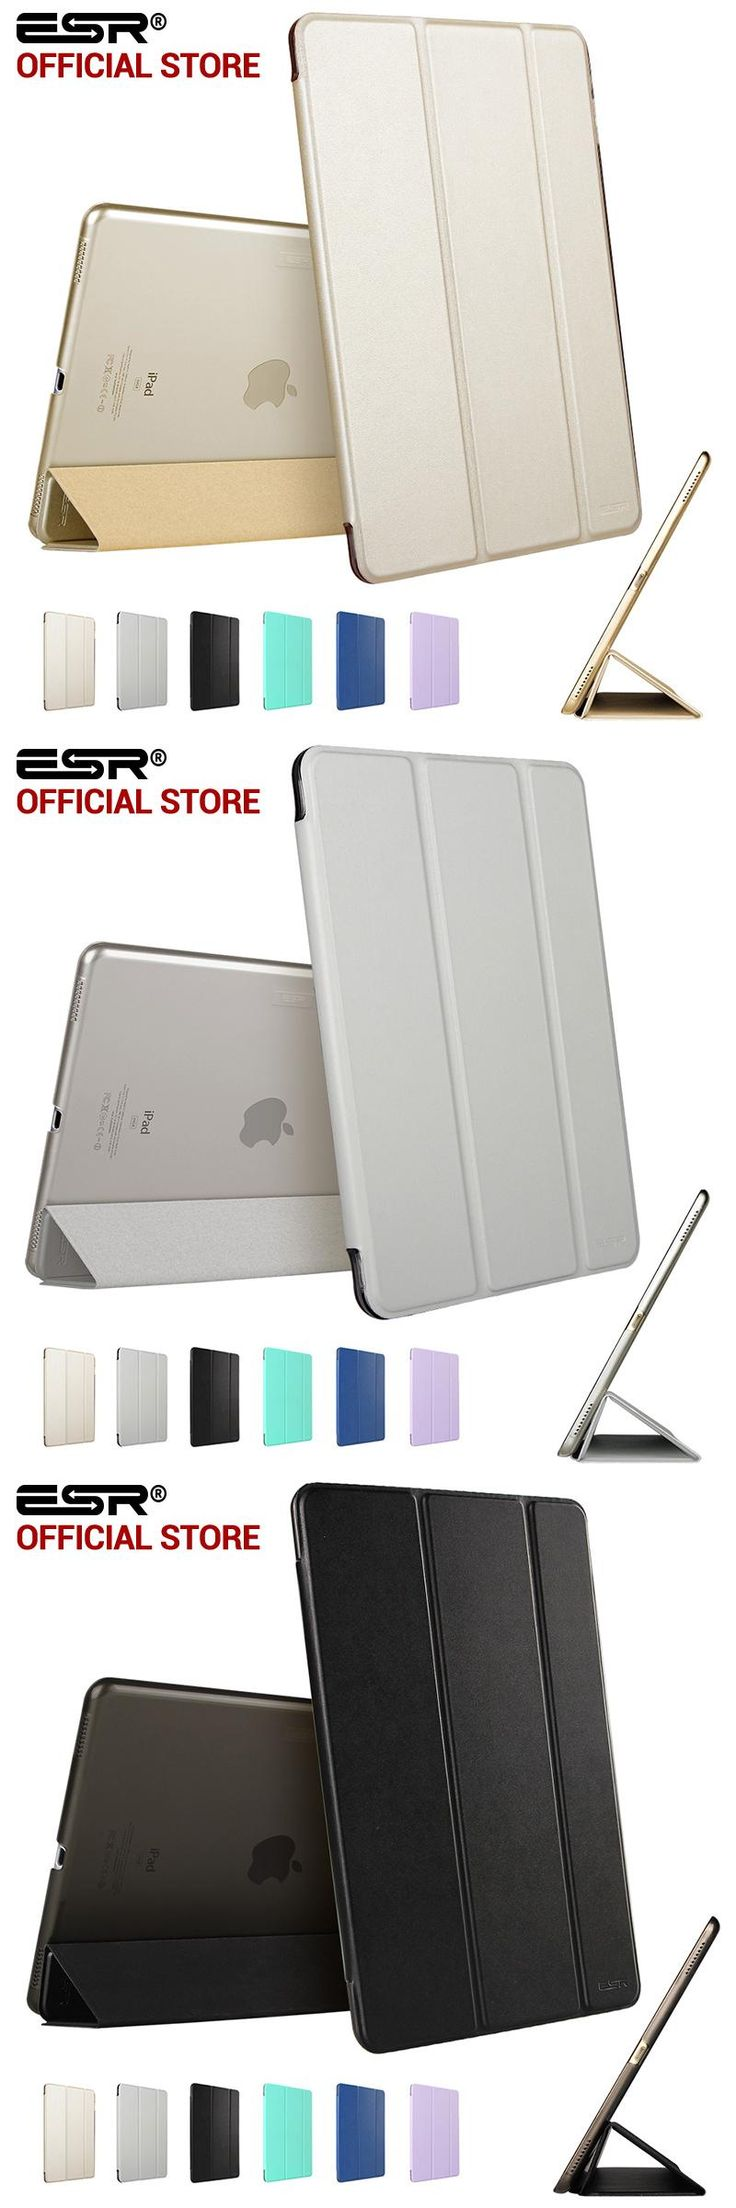 [Visit to Buy] Case for iPad Pro 12.9 inch, ESR PU Leather Tri-fold Stand Smart Cover Case with Translucent Back for iPad Pro 12.9 2015 Release #Advertisement